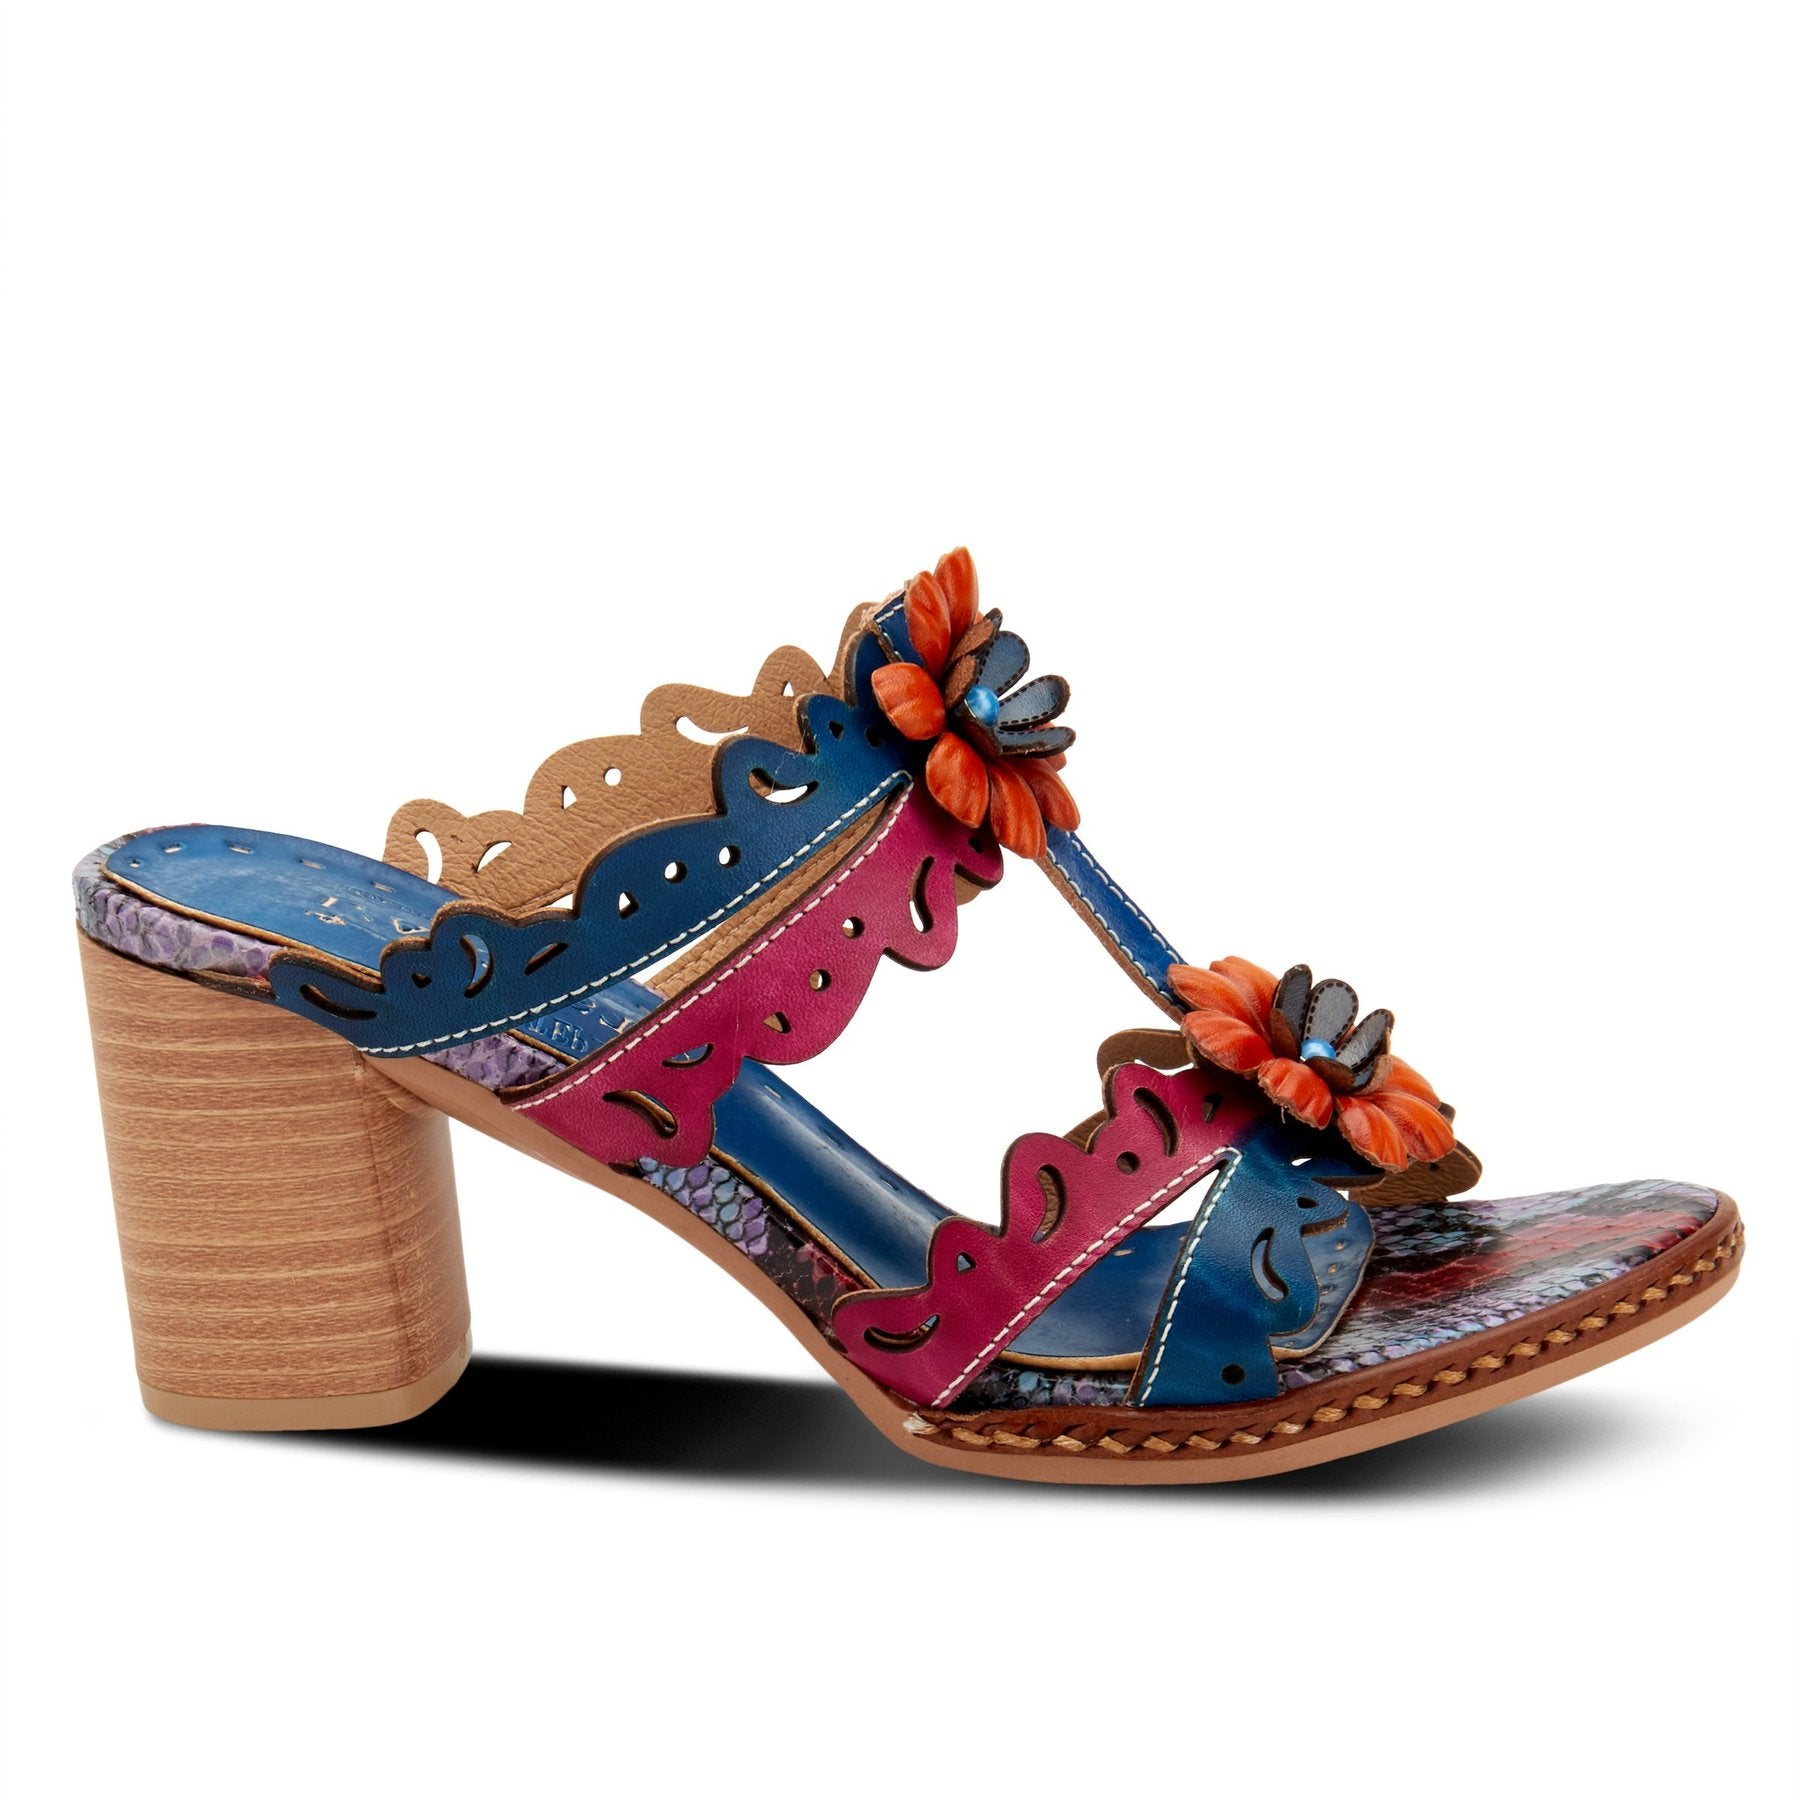 The beautiful hand-painted swirly die-cut leather straps in alternating colors feature laser cutout design with two dimensional brightly colored floral appliques centered with stones adorning the vamp.  A multi-color python print graces the toe bed and platform and the chunky heel keeps this artsy eclectic sandal comfortable for all day and night wear. In New Orleans at Nola Foot Candy.